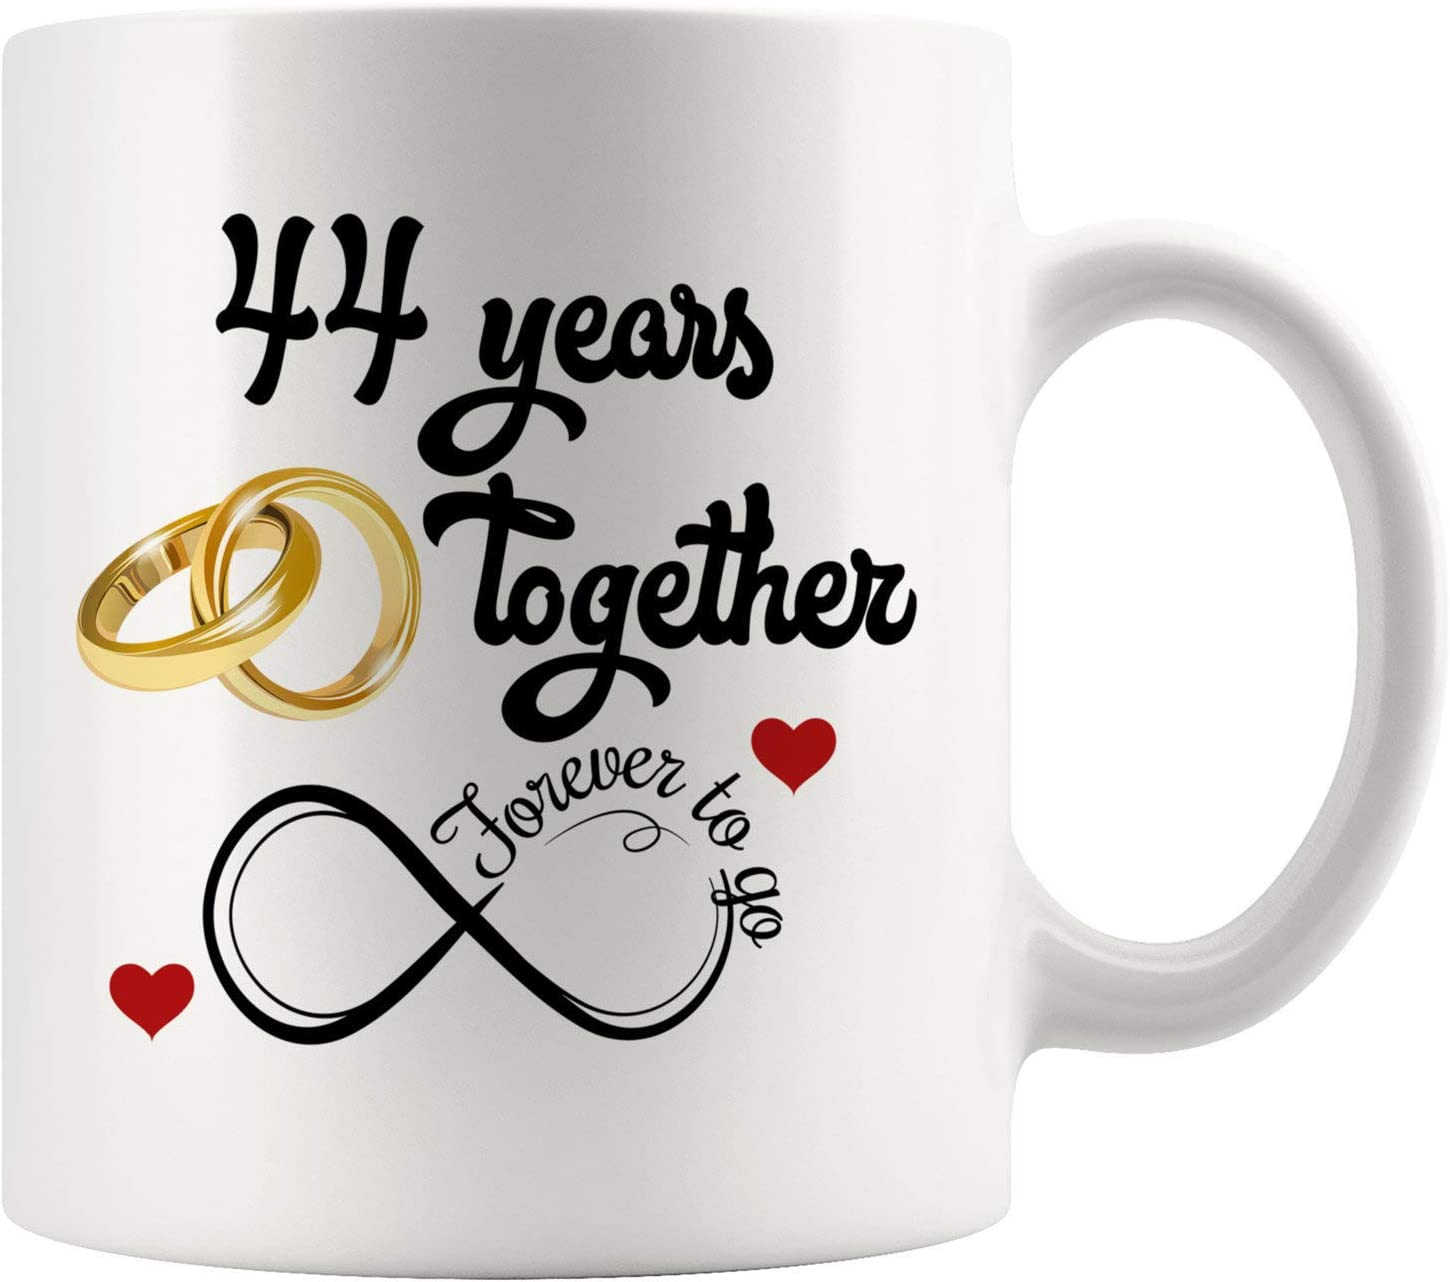 Amazon Com 44th Wedding Anniversary For Him And Her 44th Anniversarys For Her Him 44th Anniversary Mug For Husband Wife 44 Years Together Married 44 Years 44 Years Couple 11 Oz Kitchen Dining